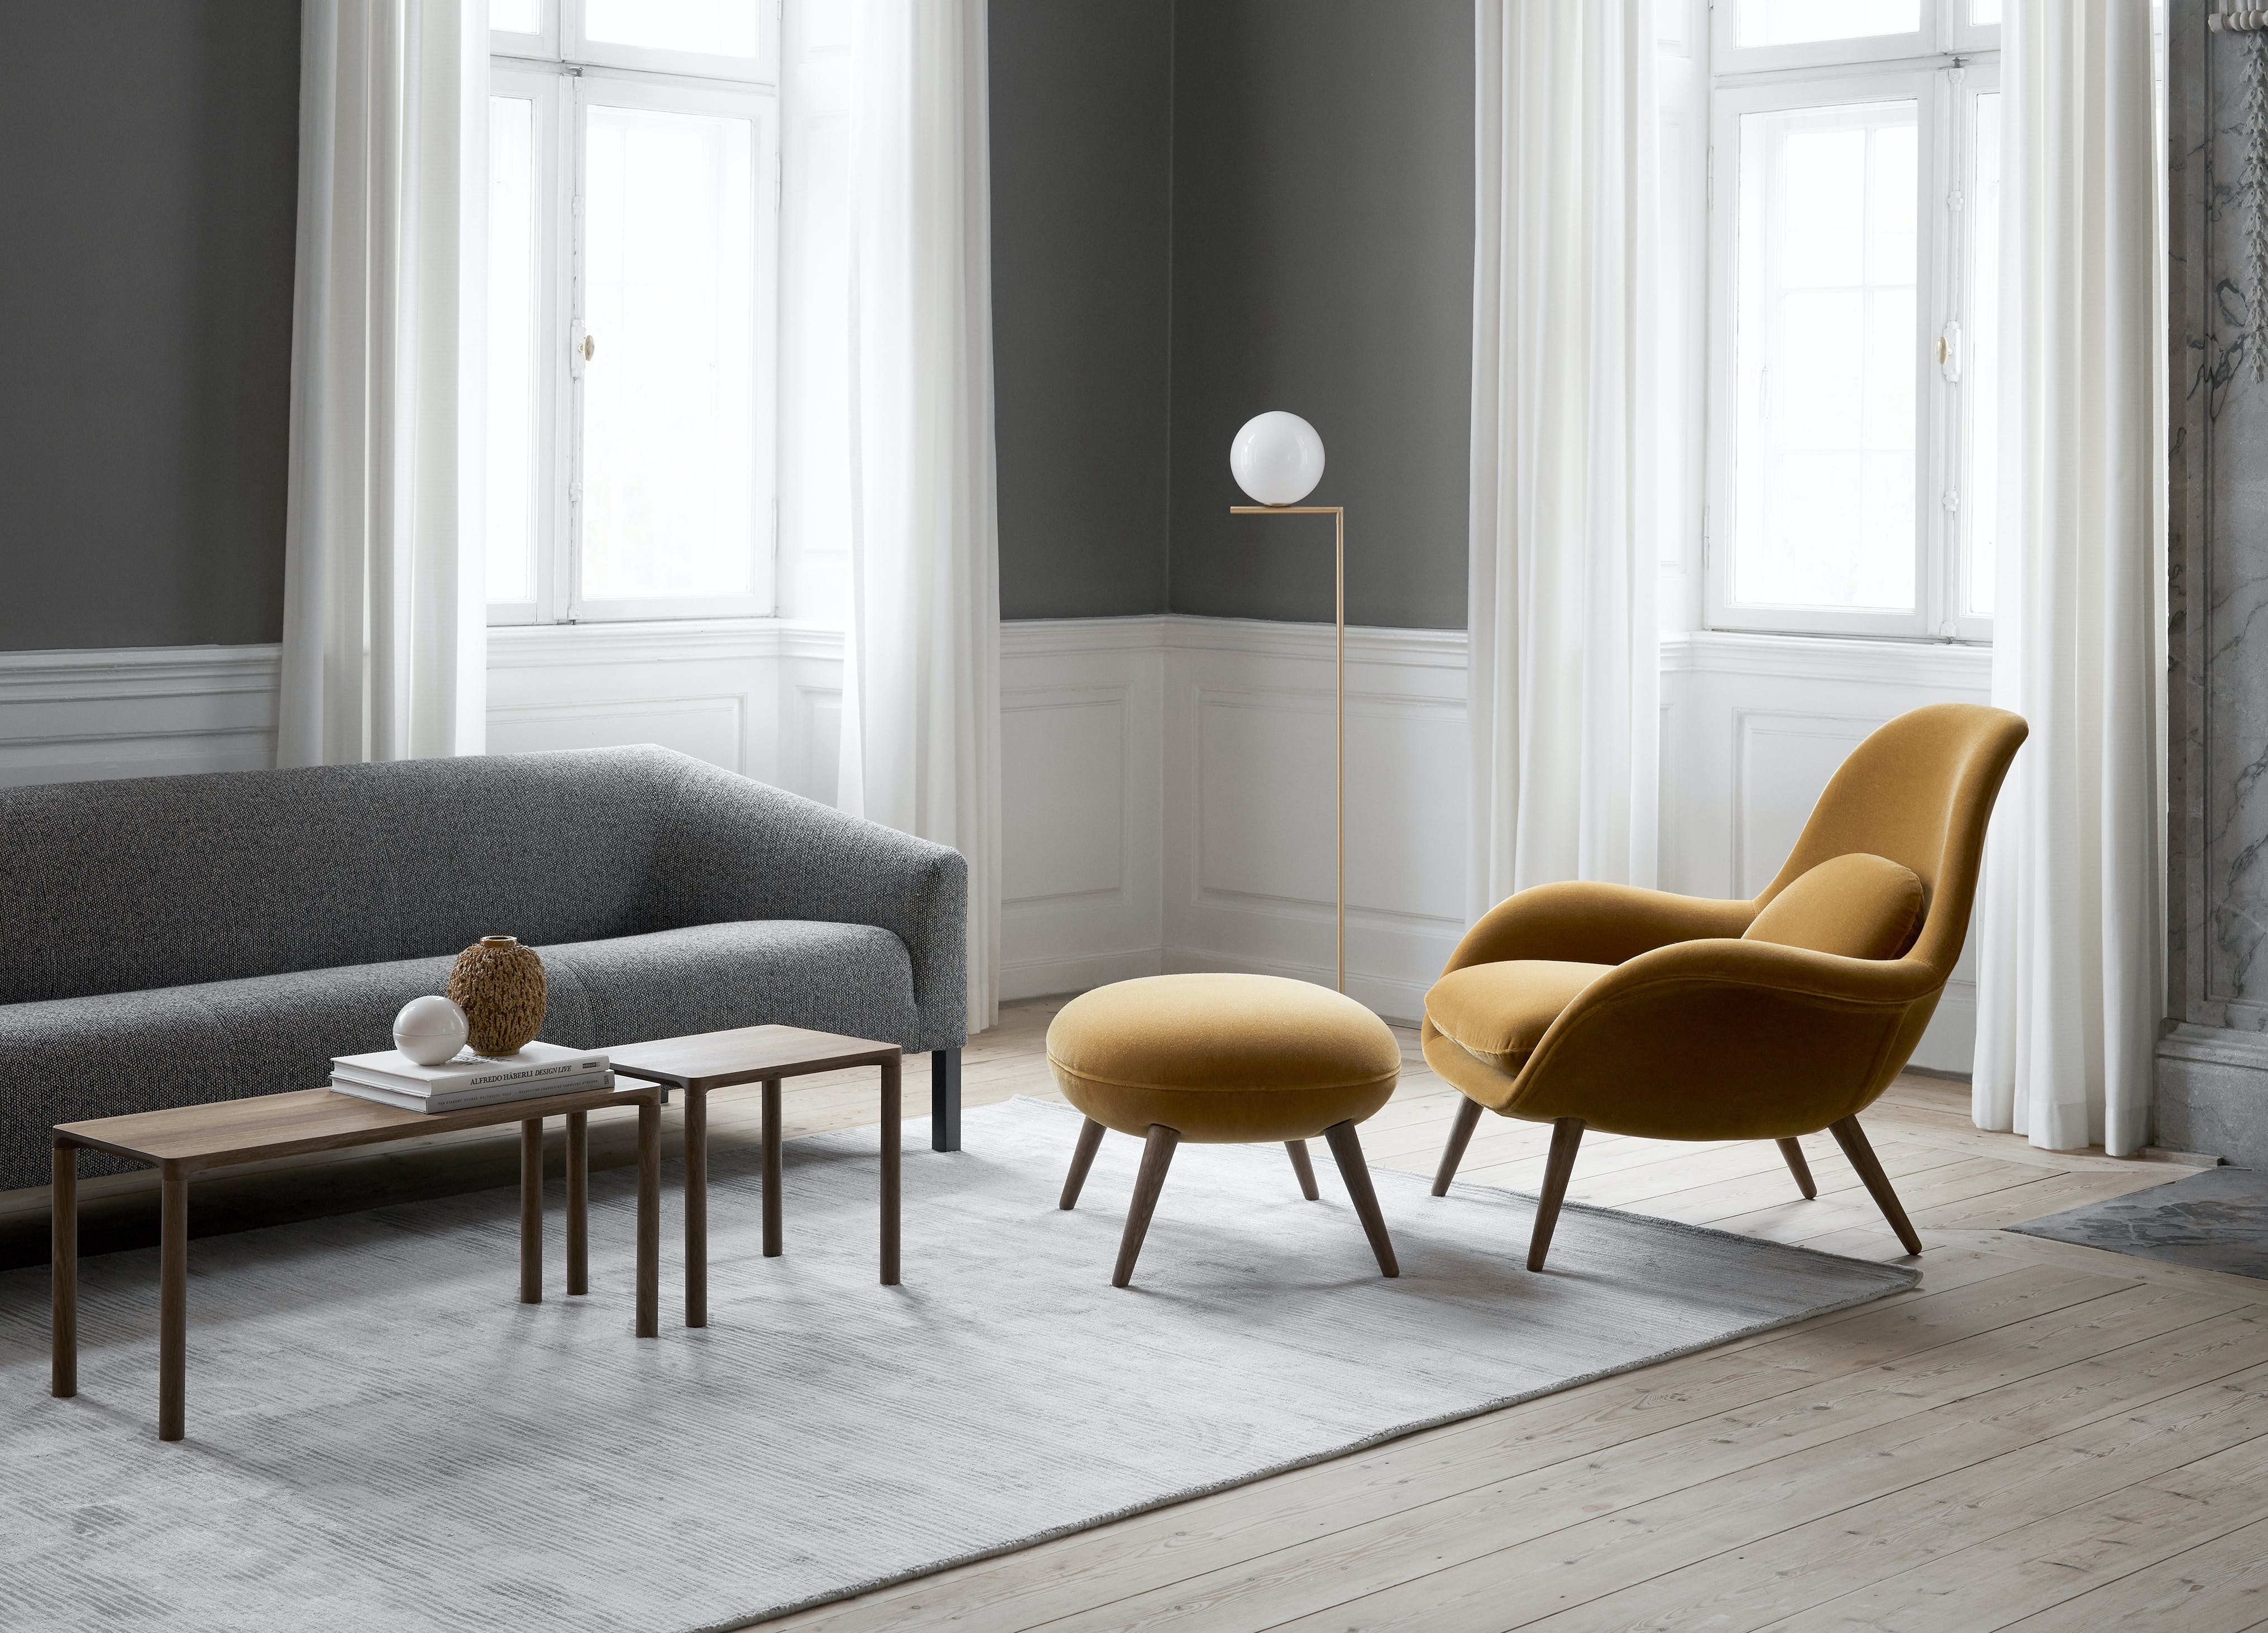 Fredericia-swoon-chair-insitu-yellow-haute-living